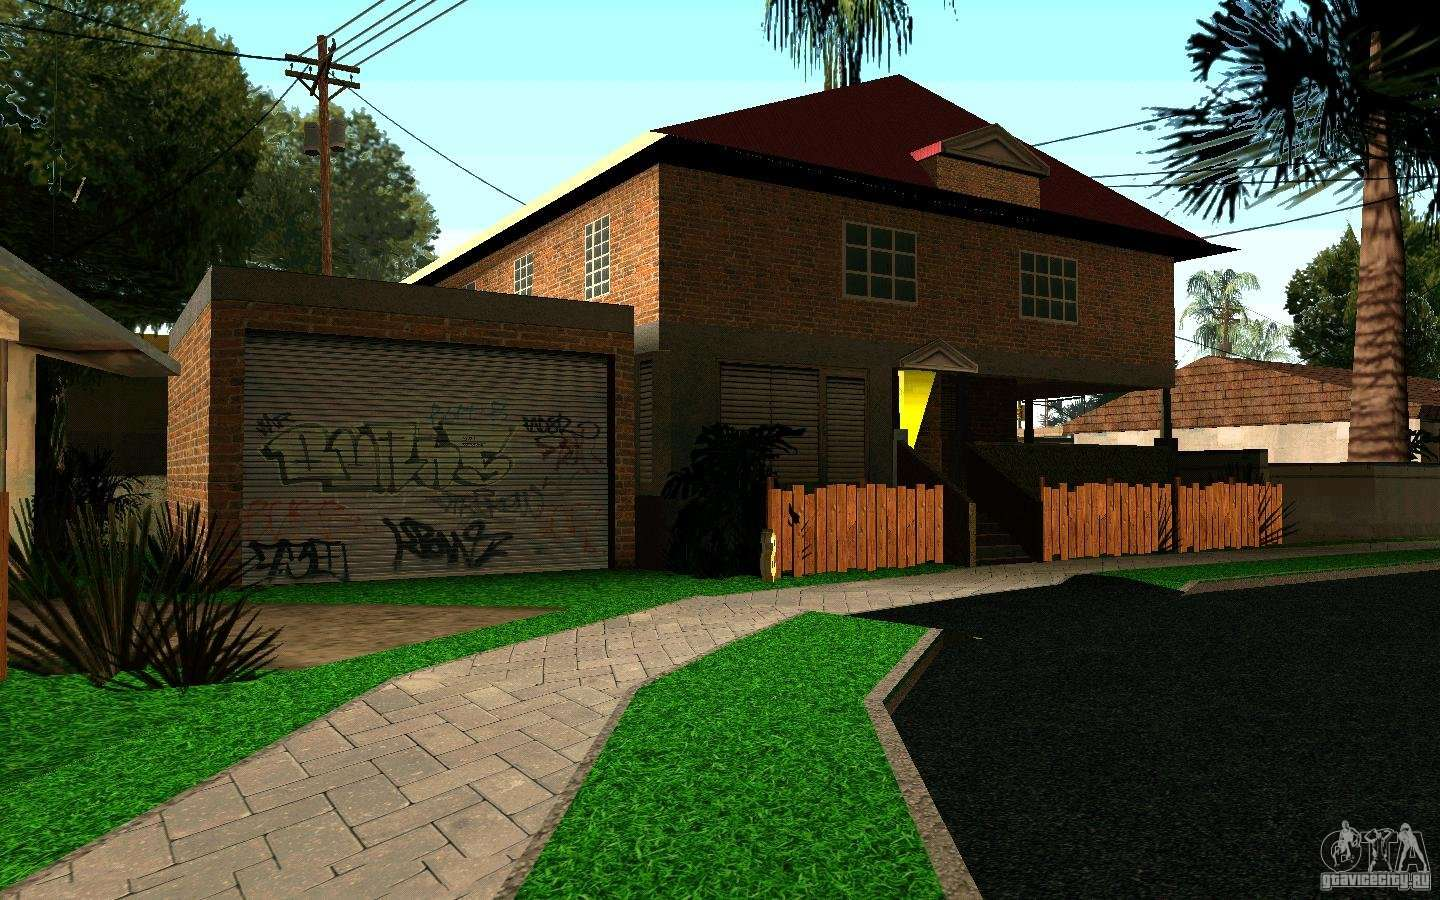 New home on grove street cj for gta san andreas for Grove house